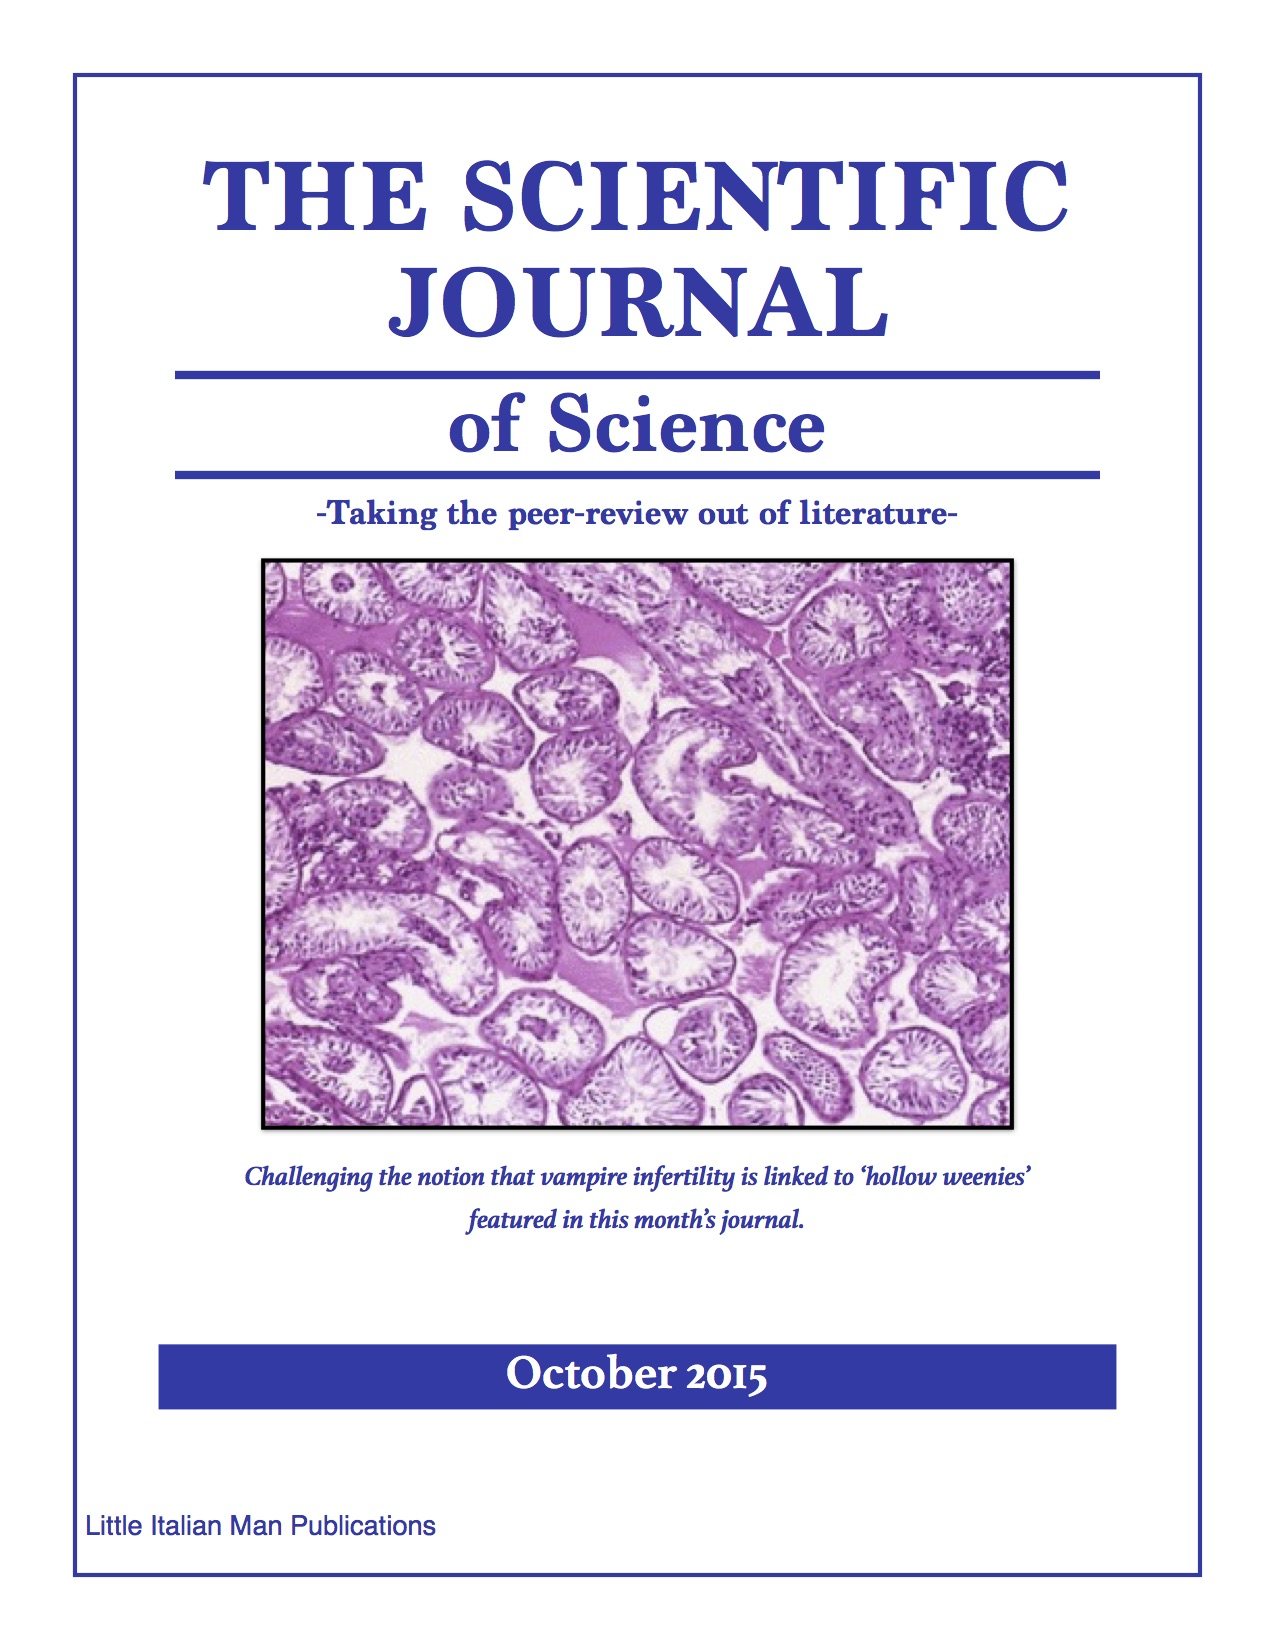 how to search scientific journals